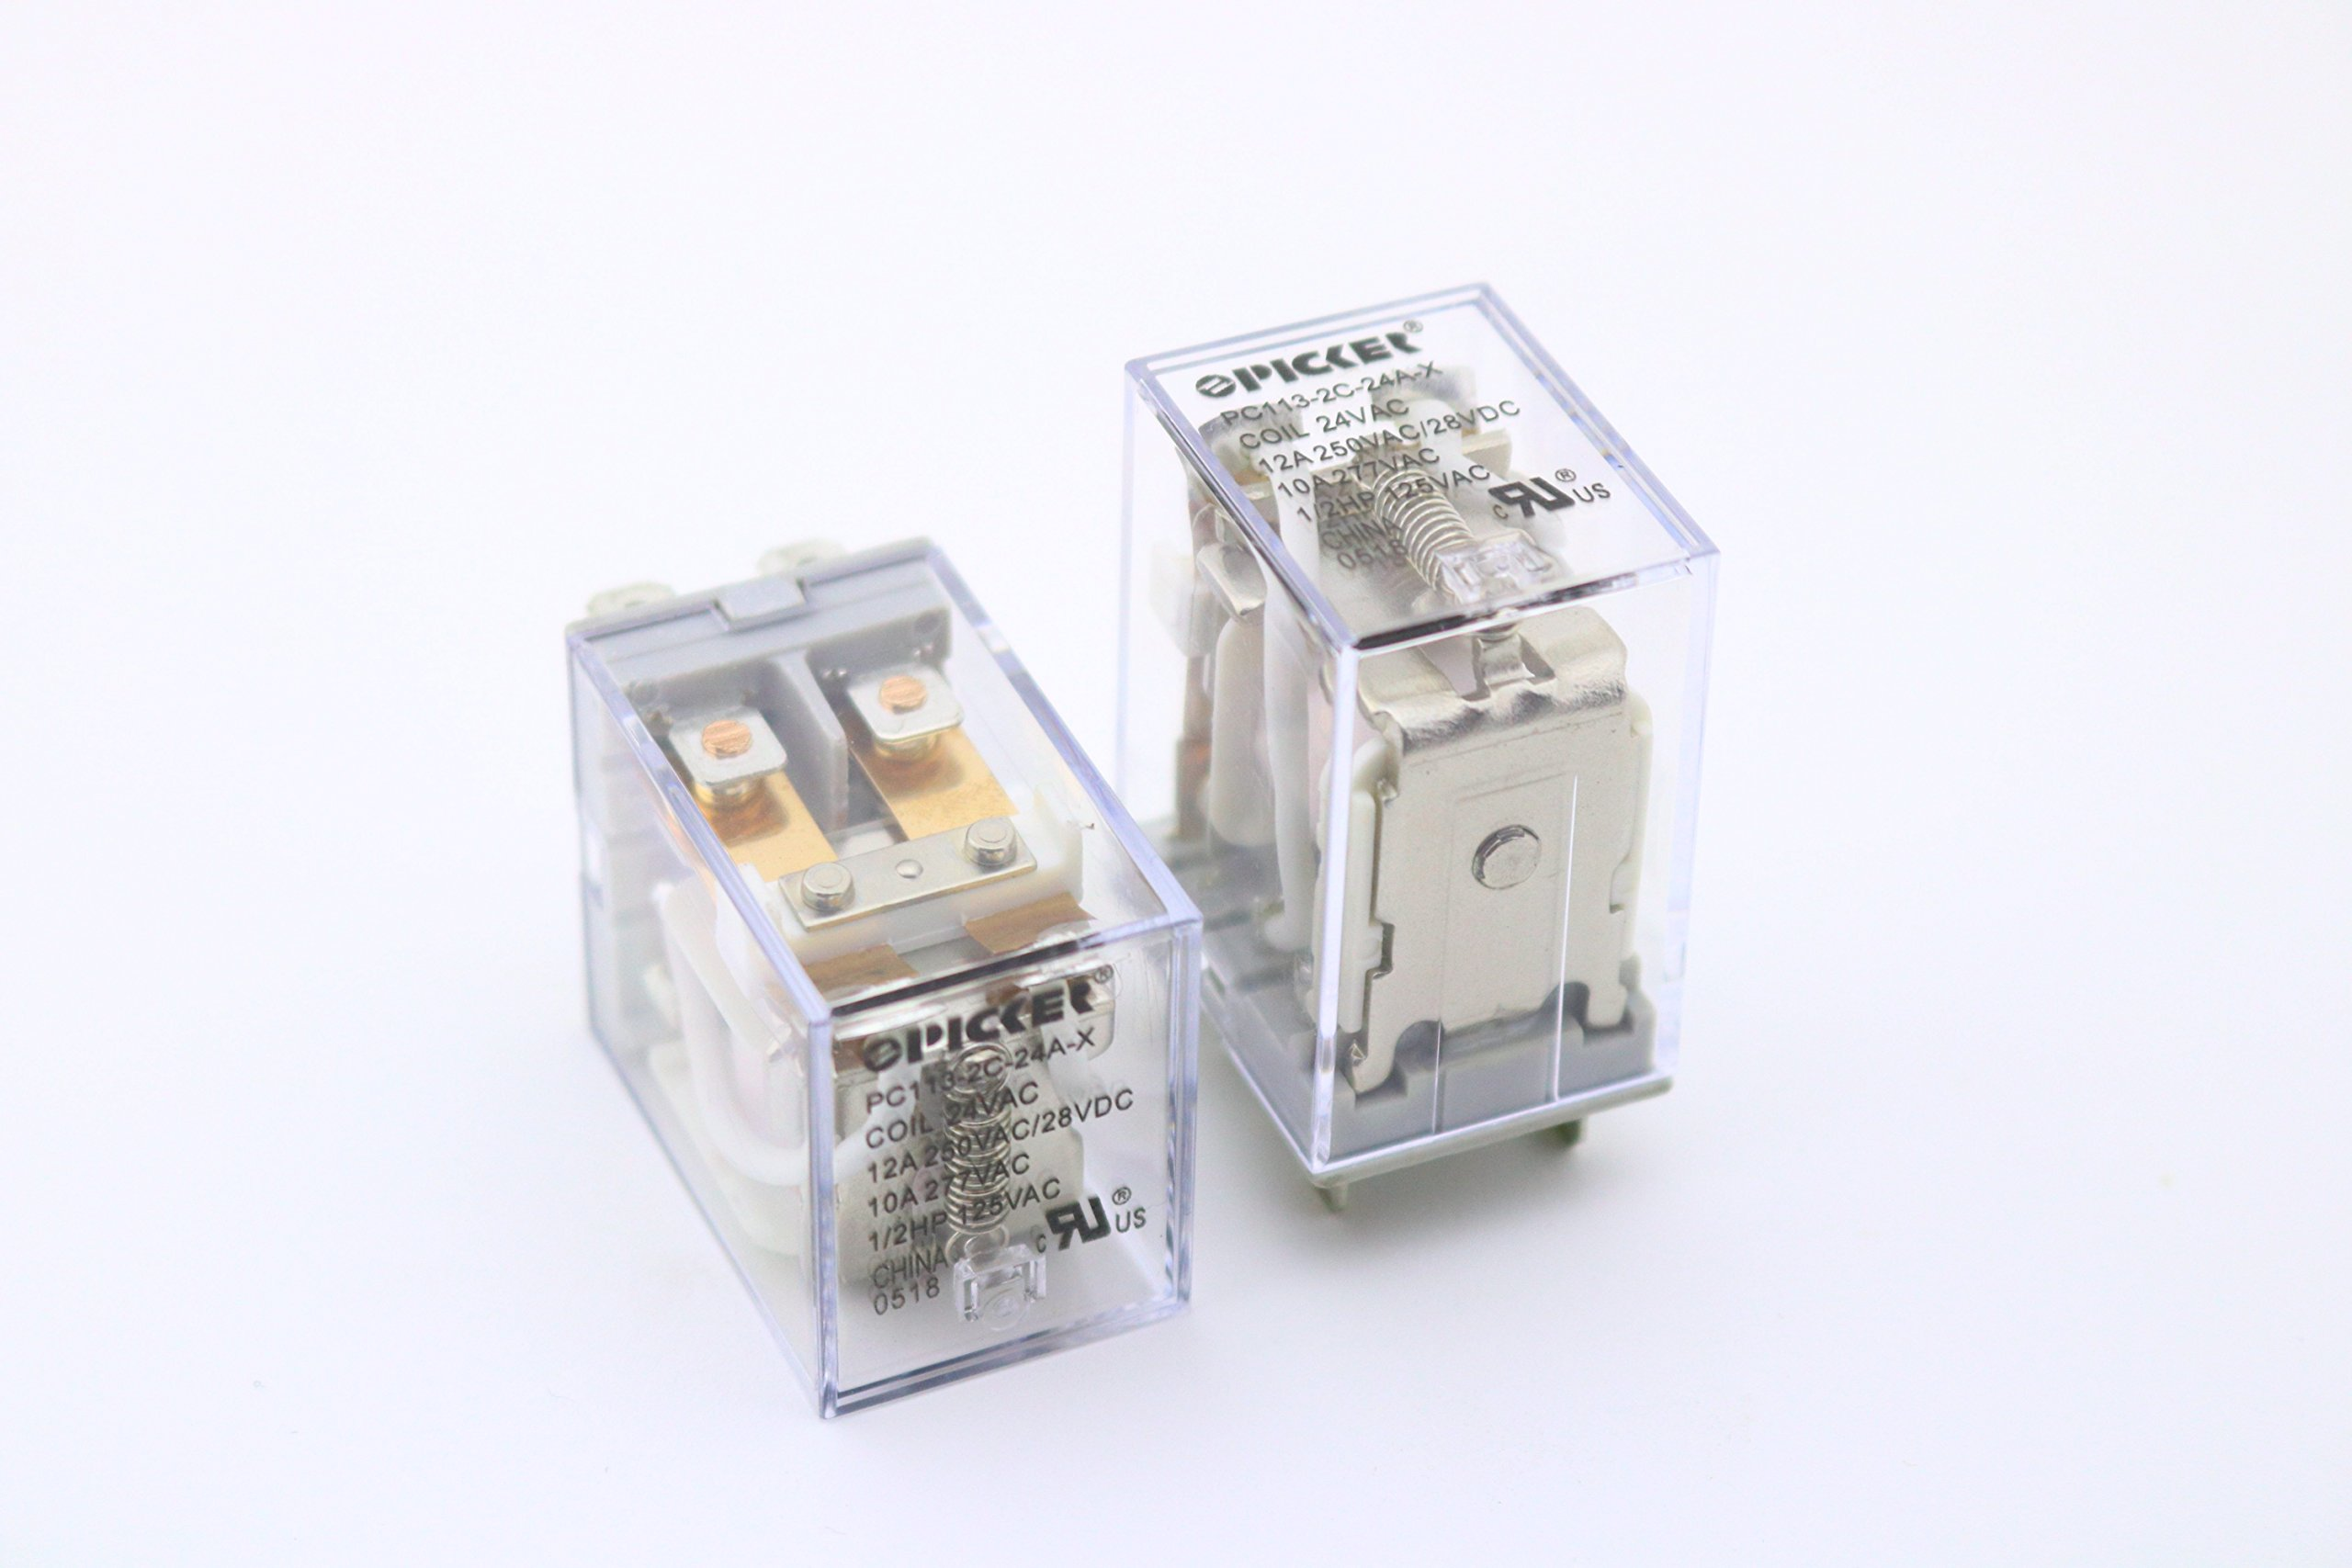 (x2) PC113-2C-24A-X-2 | DPDT 24 VAC Coil 12 Amp 250 VAC UL Rated, Miniature General Purpose Ice Cube Relay with Clear Plastic Case | Cross: Song Chuan SCL-DPDT-24VAC; Omron LY2F-AC24